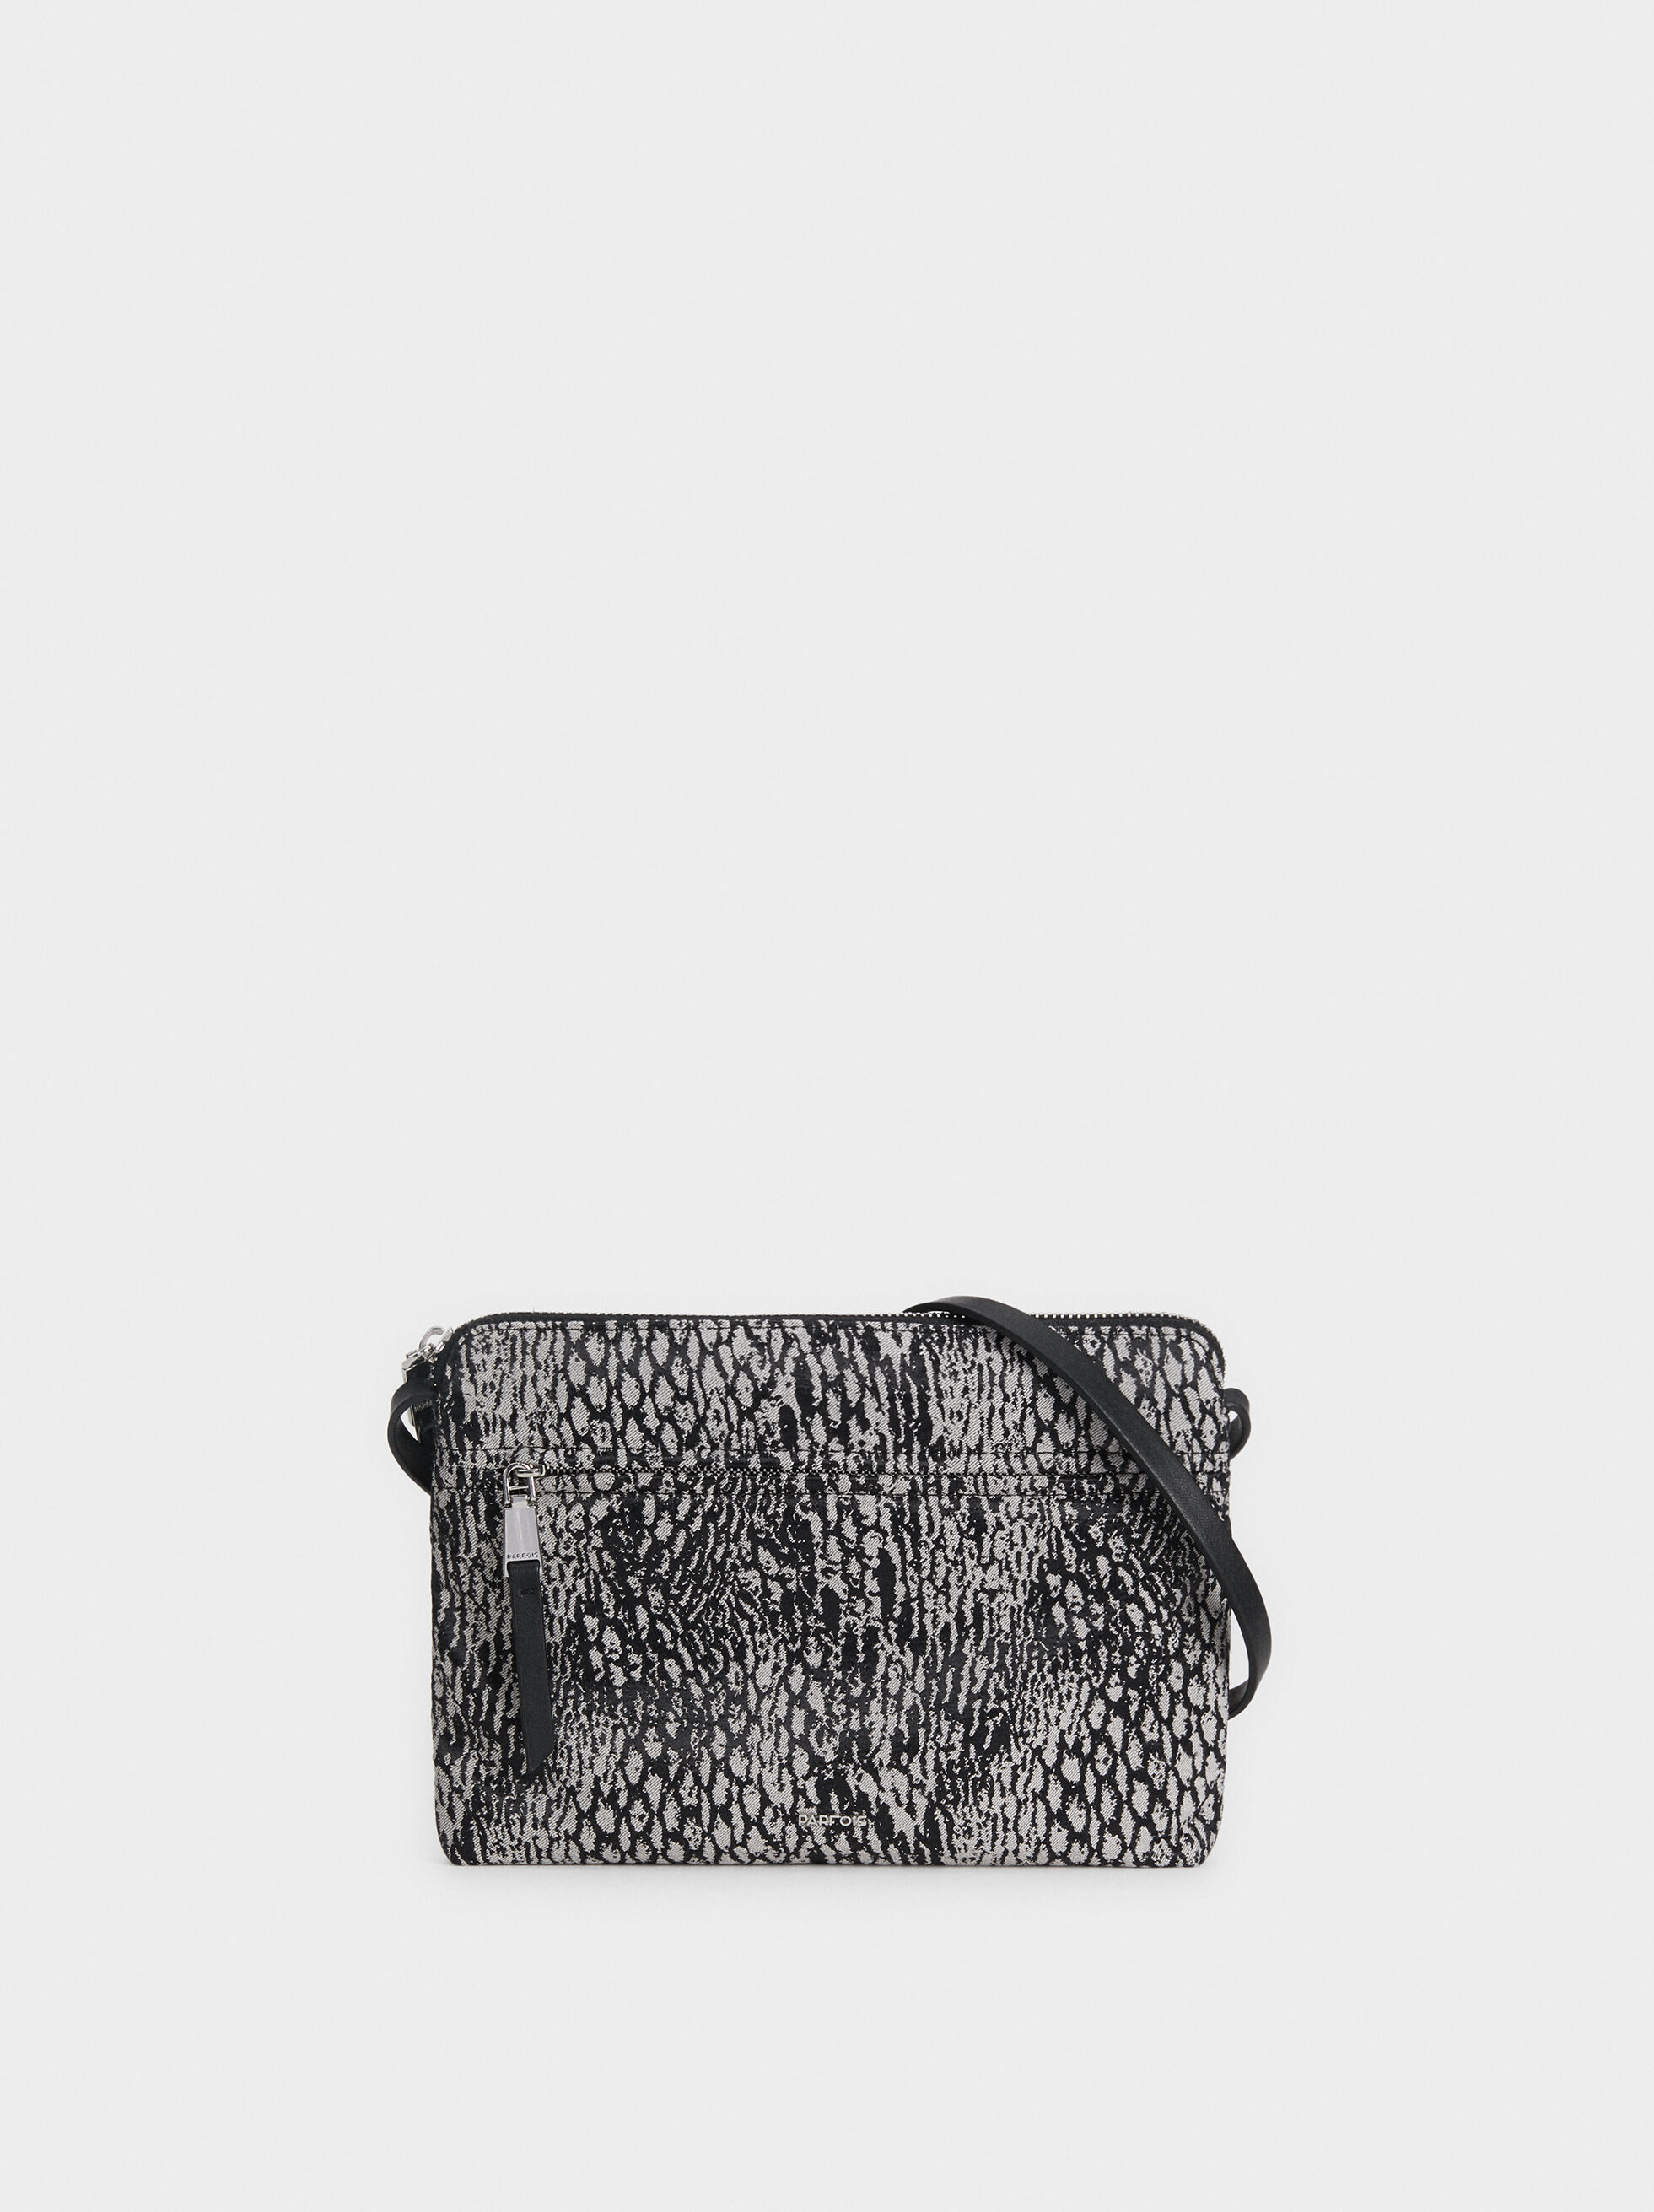 Plain Crossbody Bag With A Snakeskin Print, , hi-res